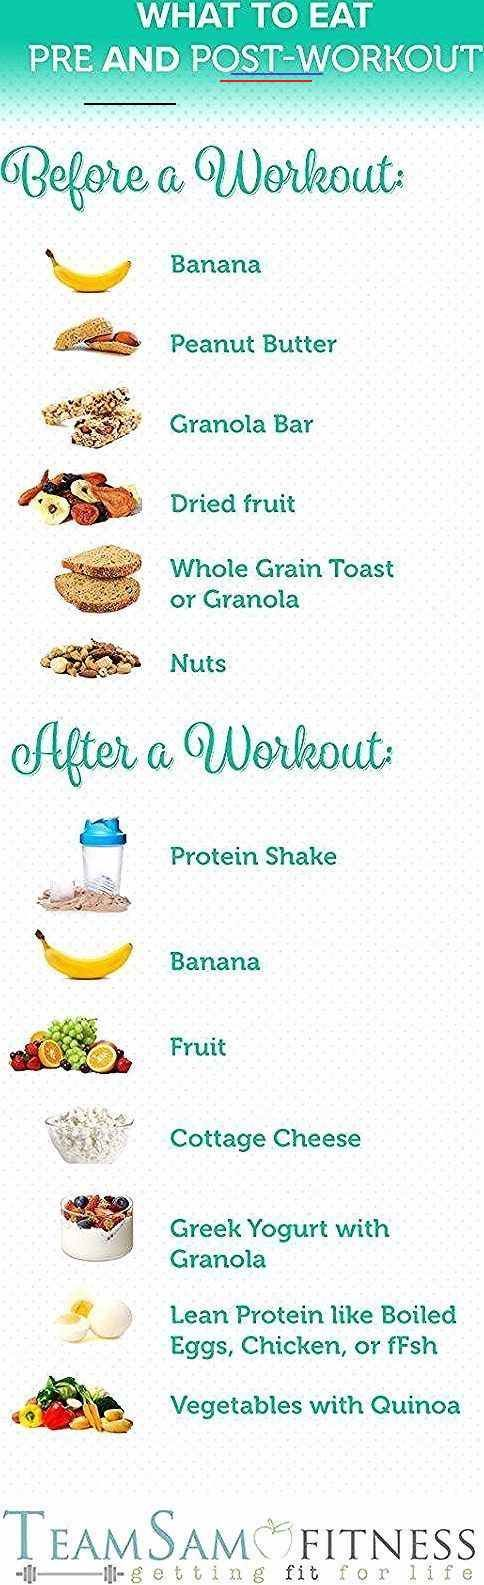 #eat #Fitness #gain #muscle #Protein #protein shake to gain muscle workout #Shake #TeamSam #Workout...